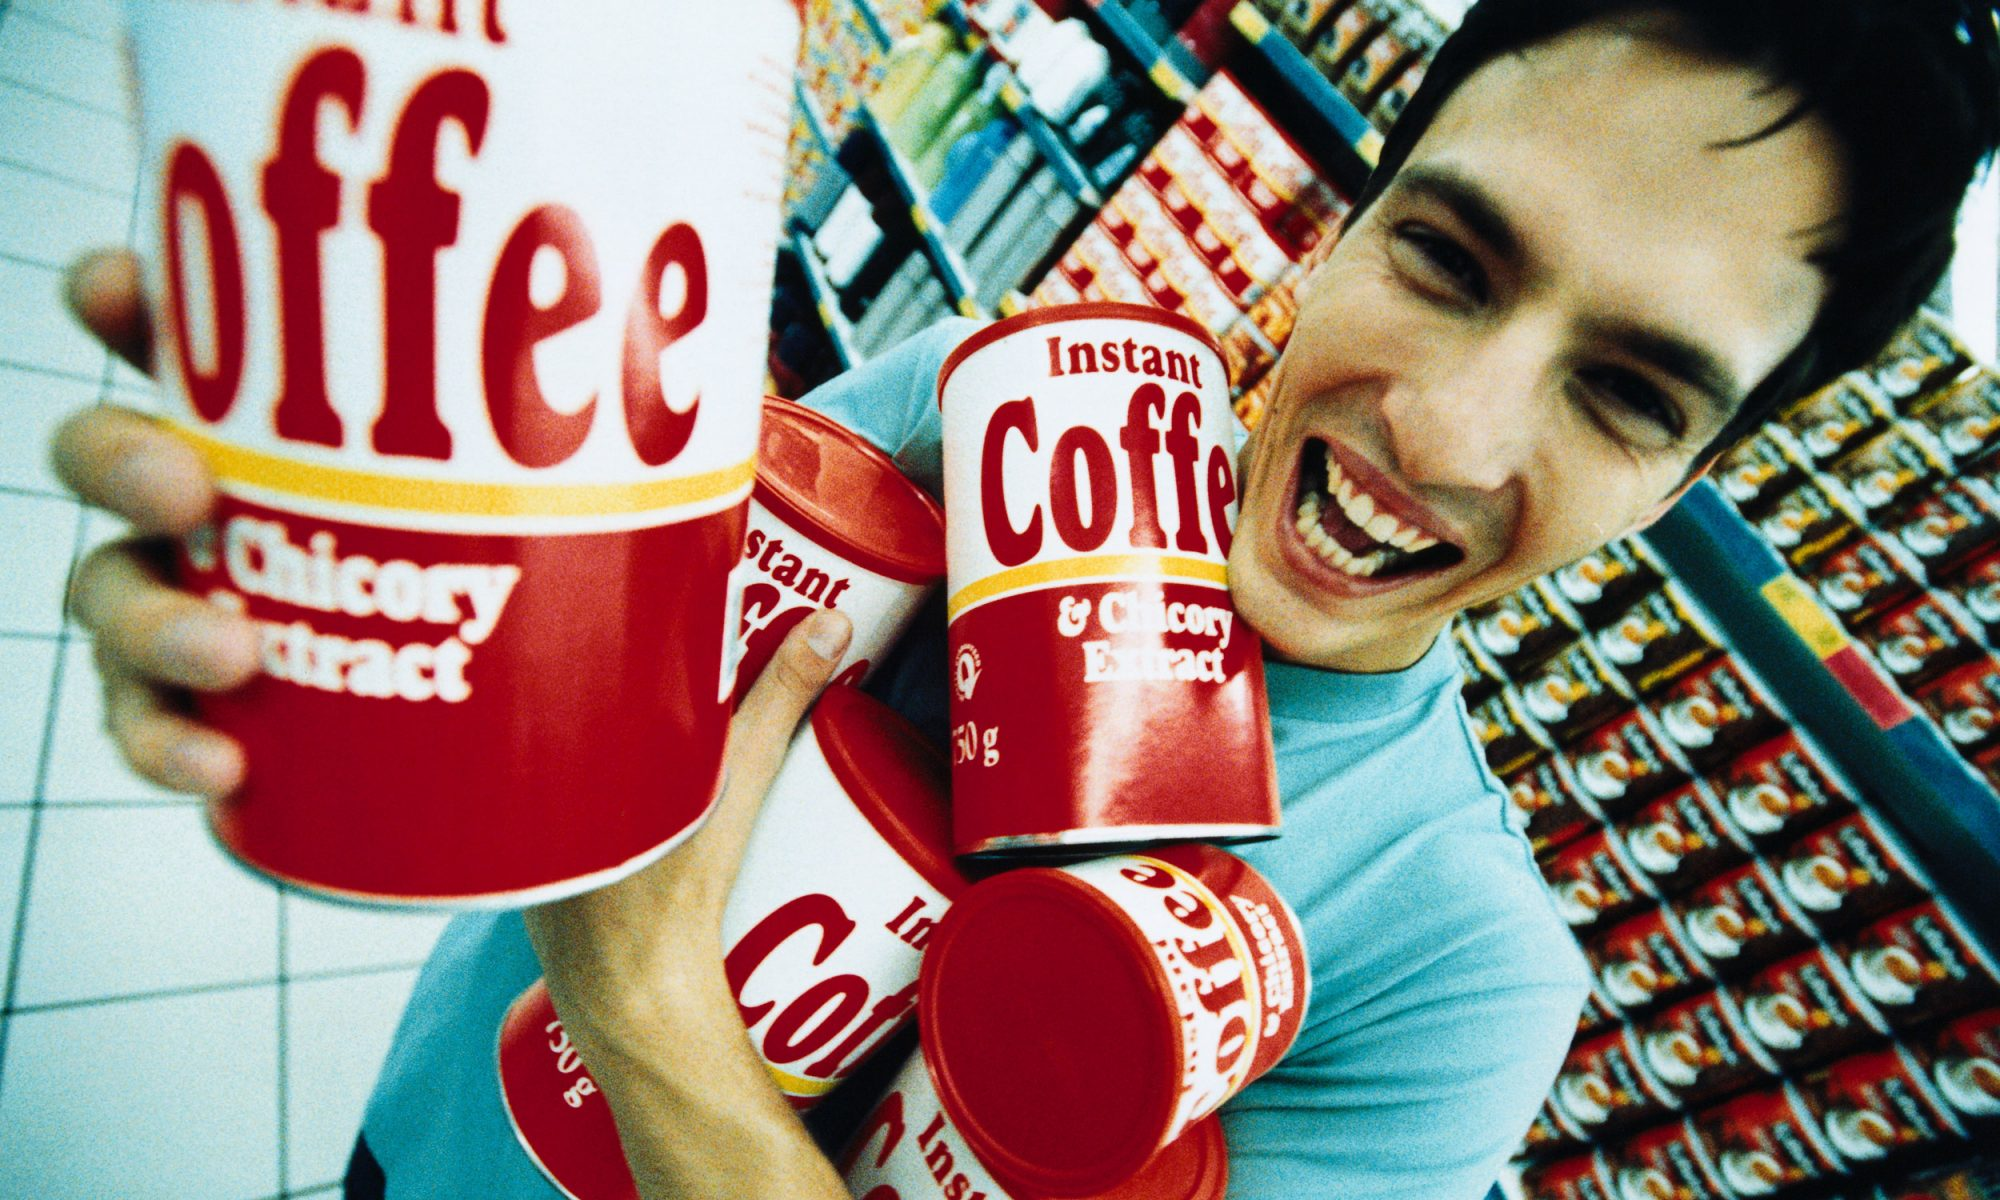 EC: I Drank Coffee Substitutes for a Week and Lost My Mind